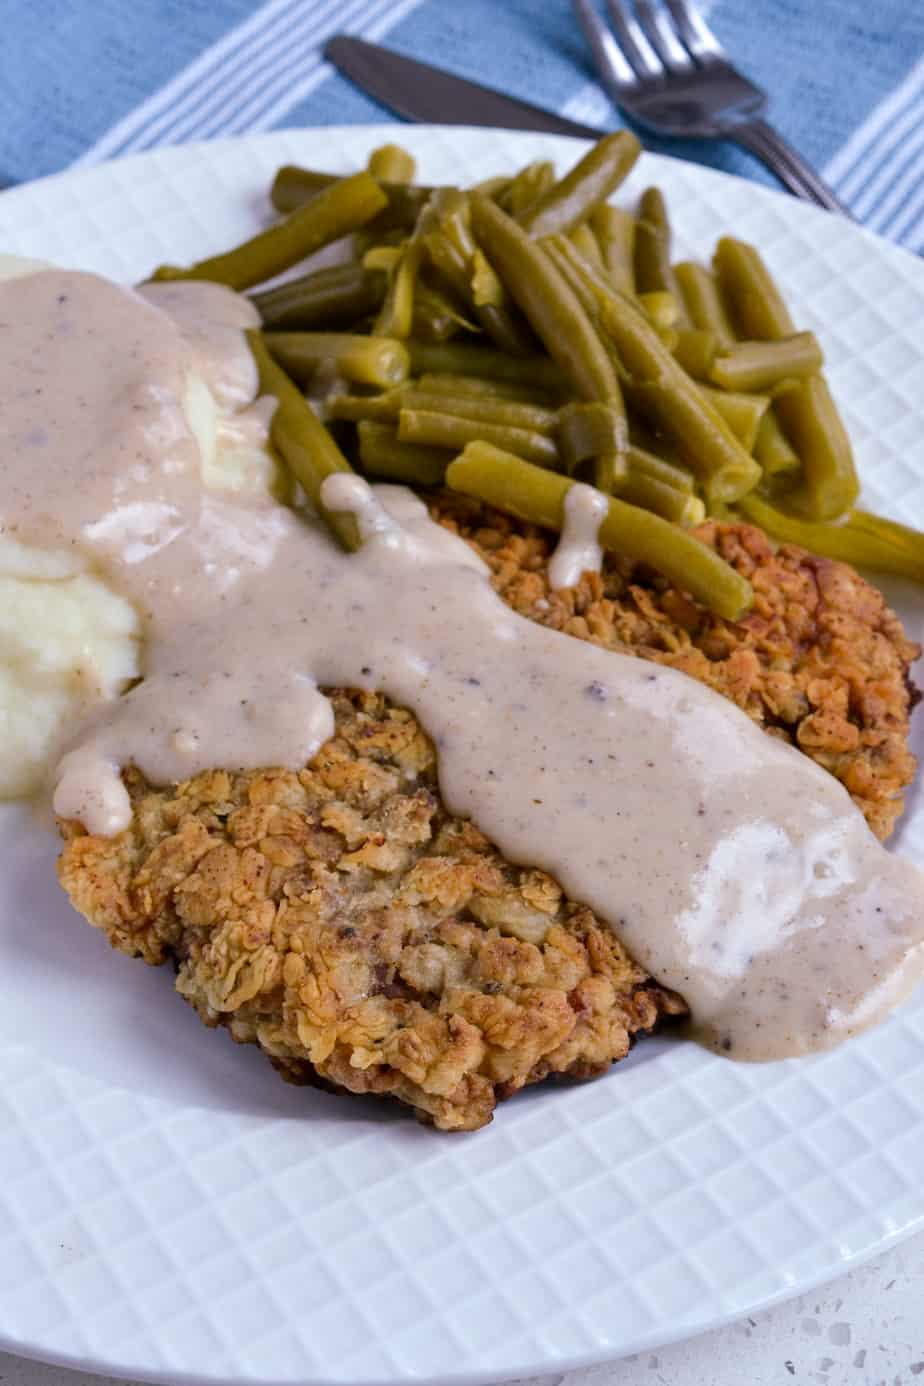 Breaded fried cube steak with mashed potatoes and gravy.